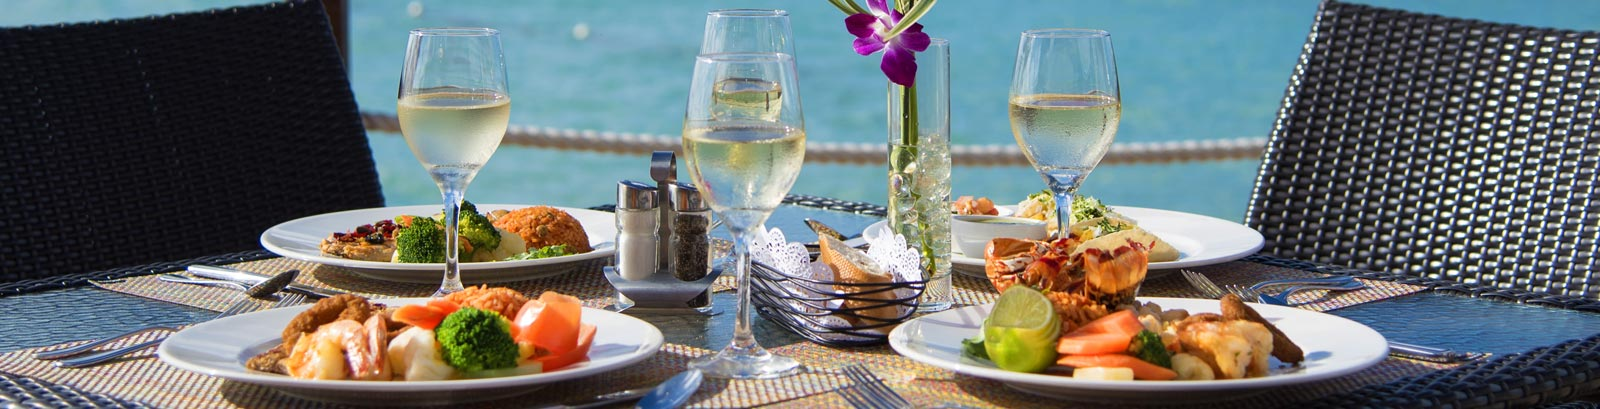 Emilios restaurant Sint Maarten - Our recommendations at Simpson Bay Resort, Marina & Spa